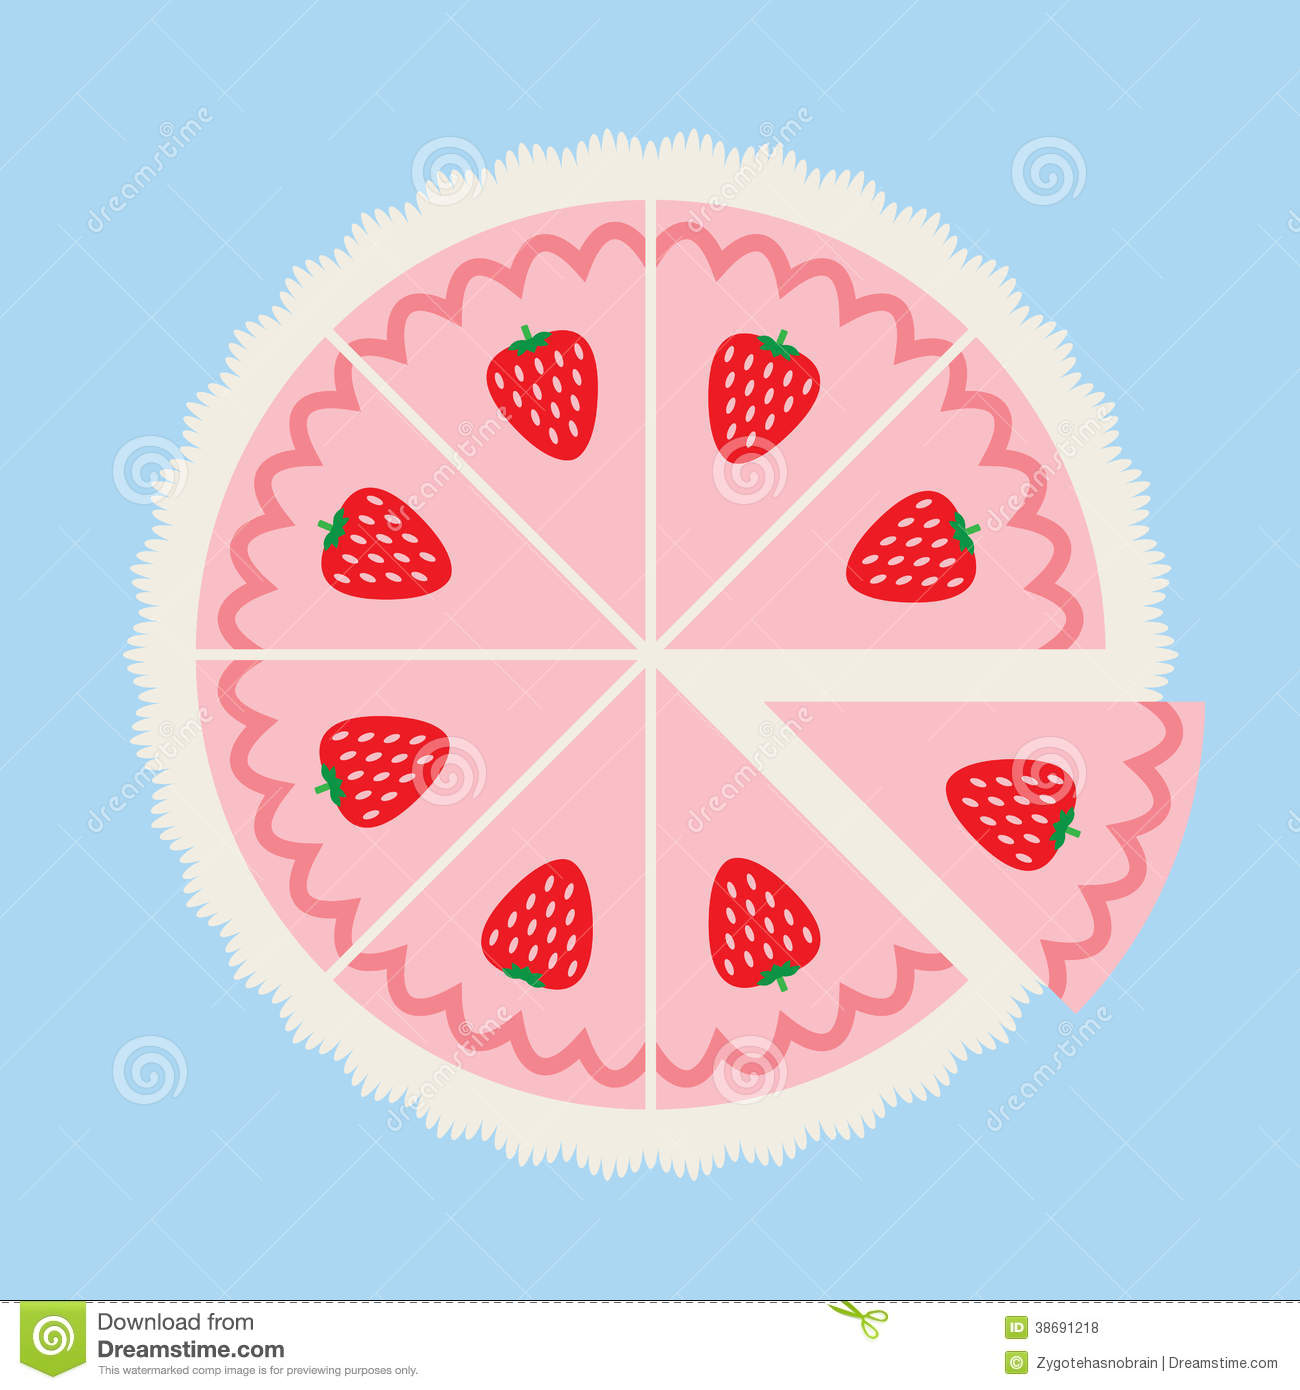 Strawberry Cake Images Free Download : Strawberry Cake Royalty Free Stock Photos - Image: 38691218